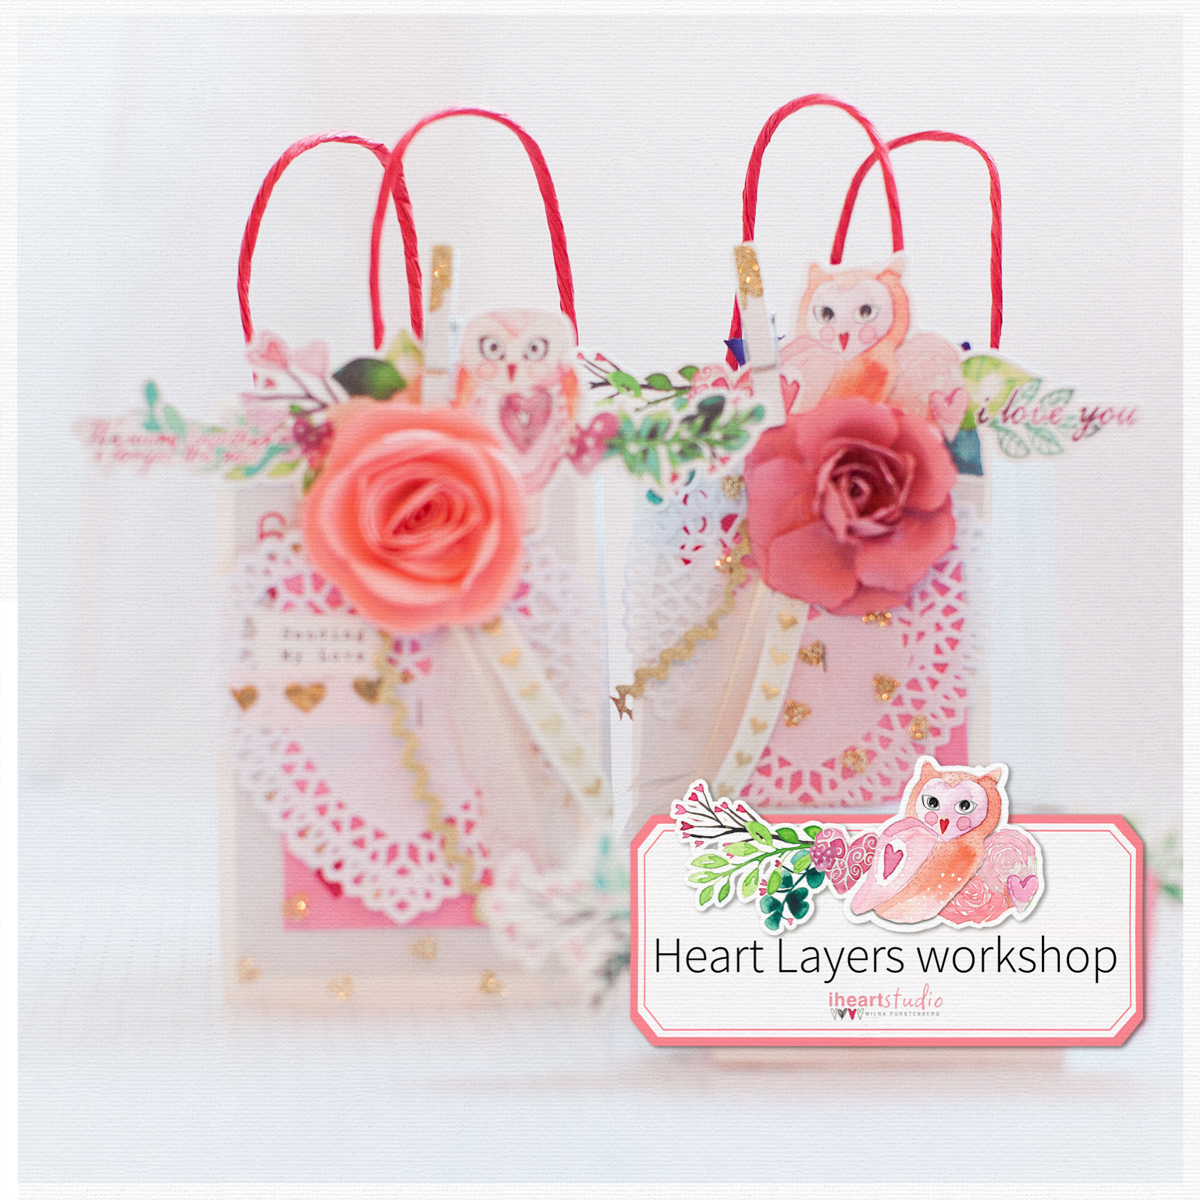 Heart Layers Workshop